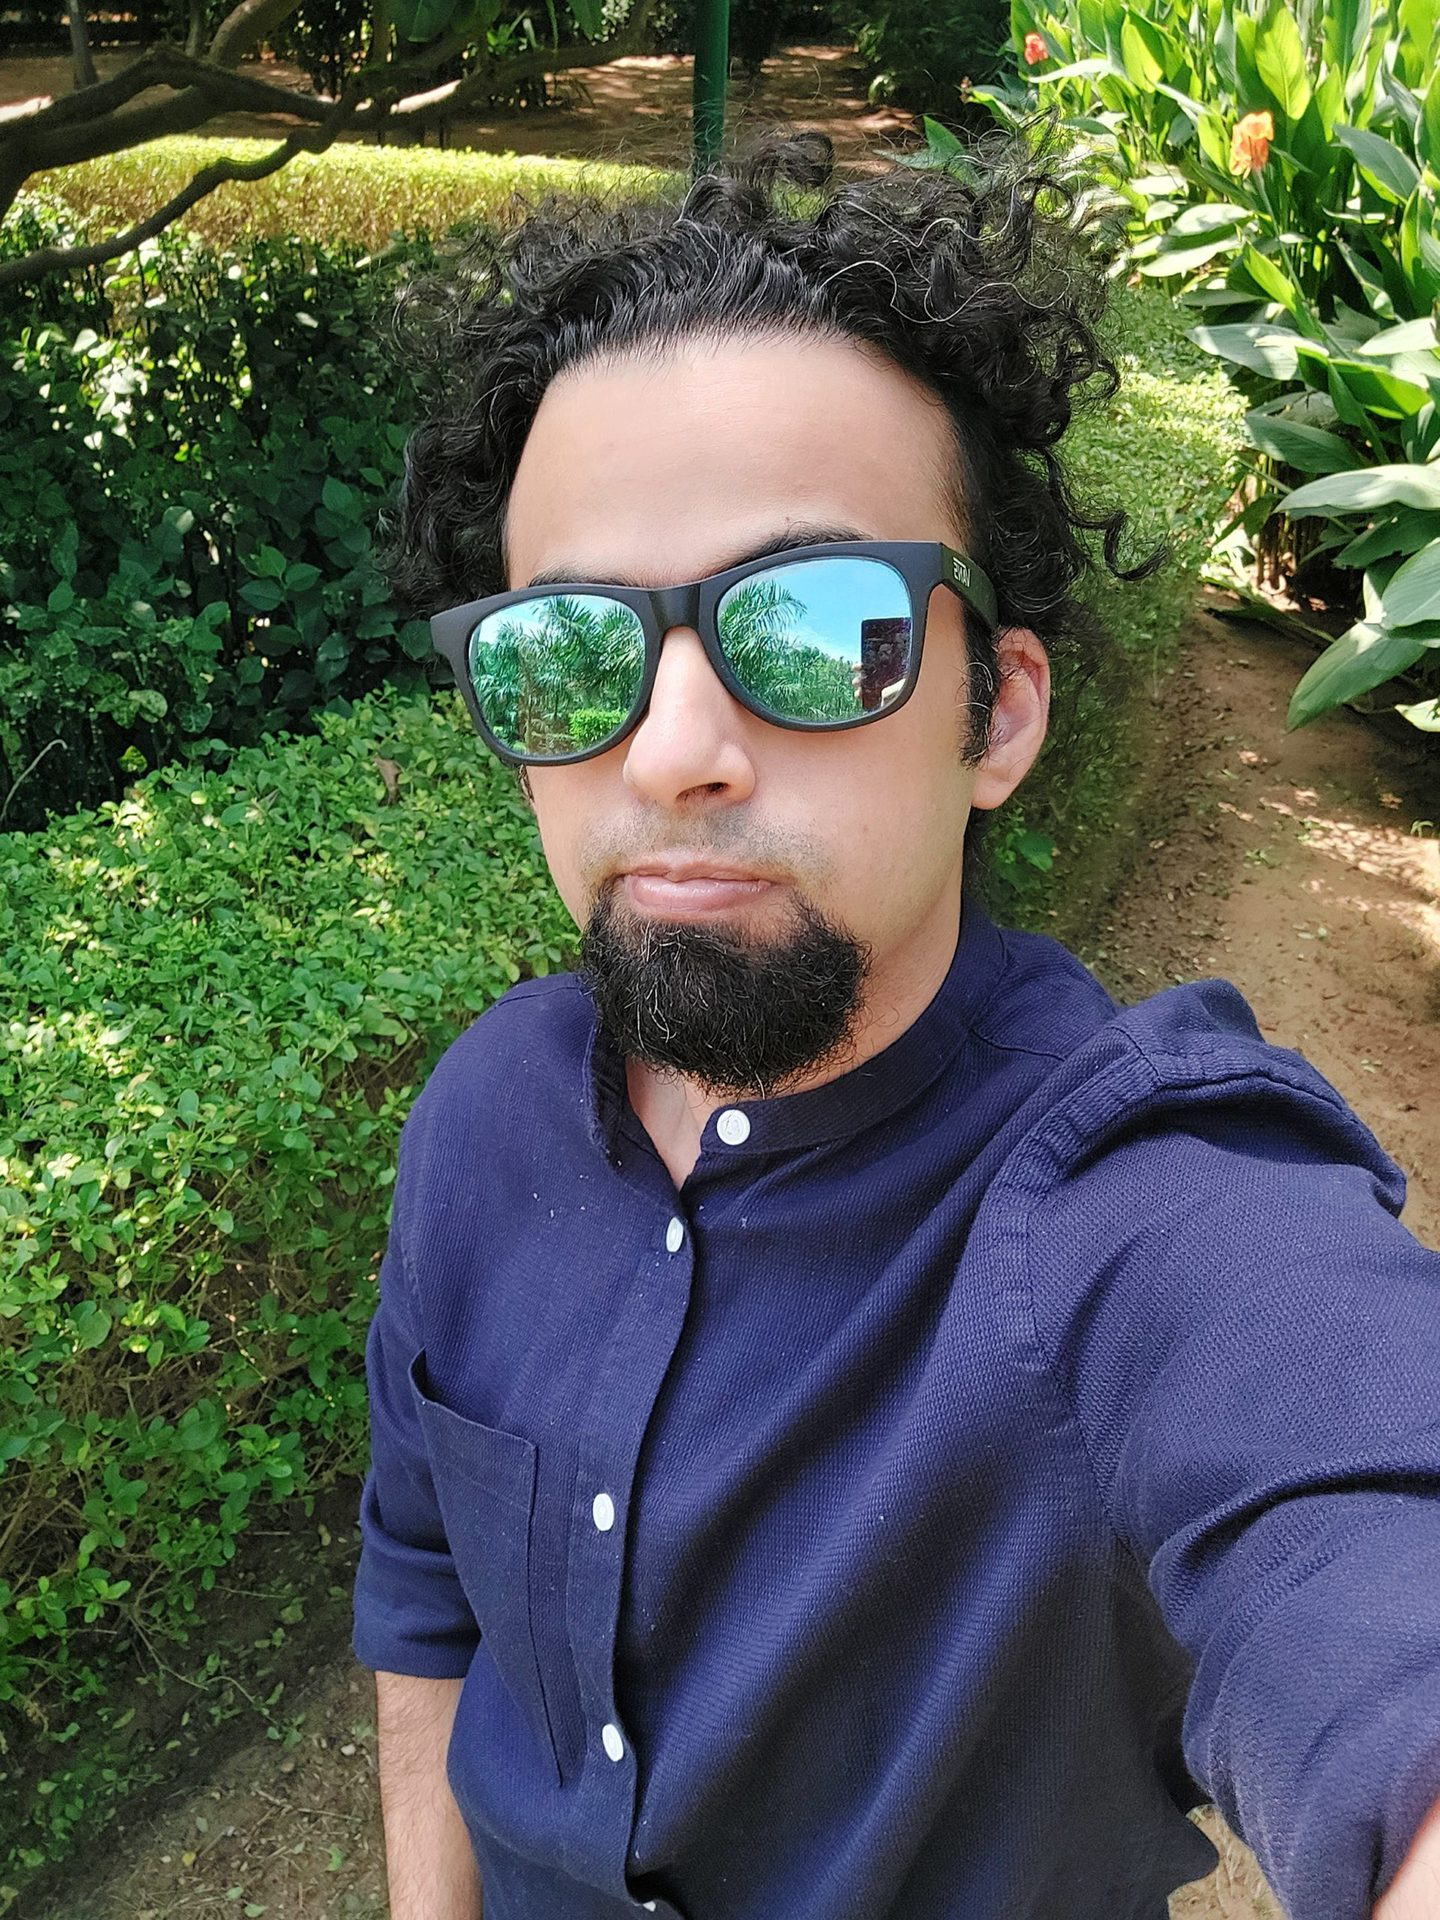 Samsung Galaxy A52s 5G selfie camera standard shot of man with dark hair and beard wearing a blue long-sleeve shirt and mirrored shades, taken outdoors next to a green hedge.